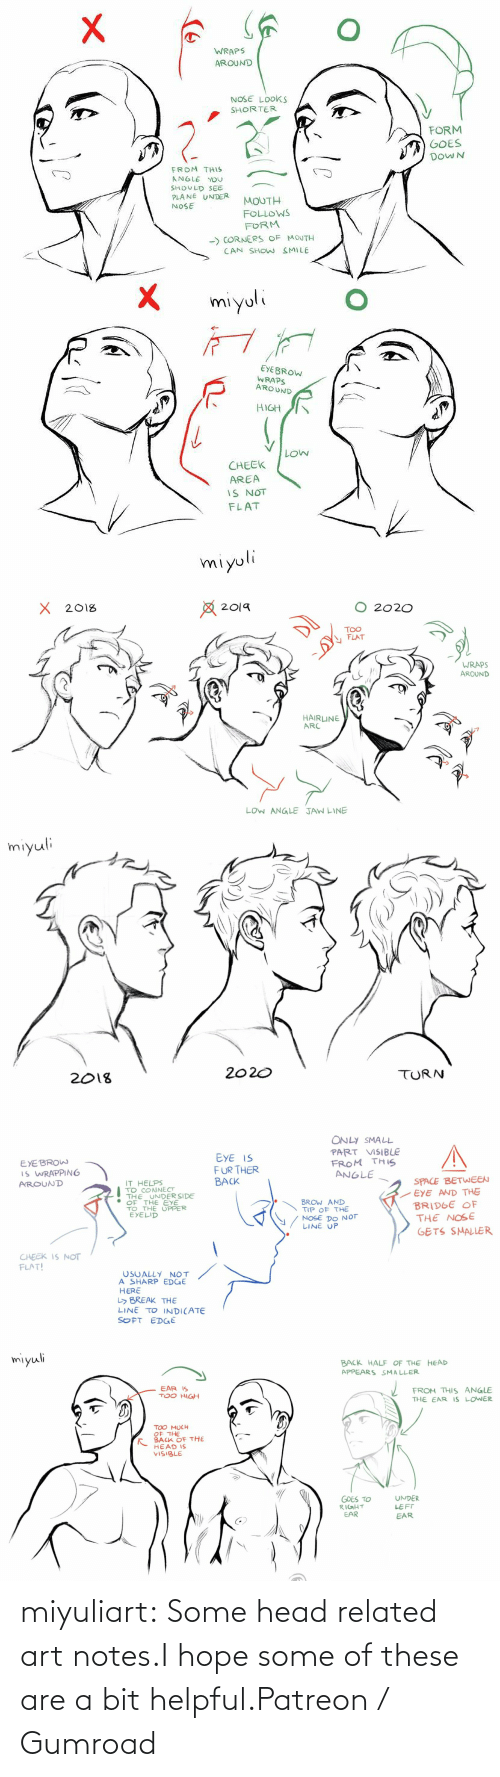 I Hope: miyuliart: Some head related art notes.I hope some of these are a bit helpful.Patreon / Gumroad